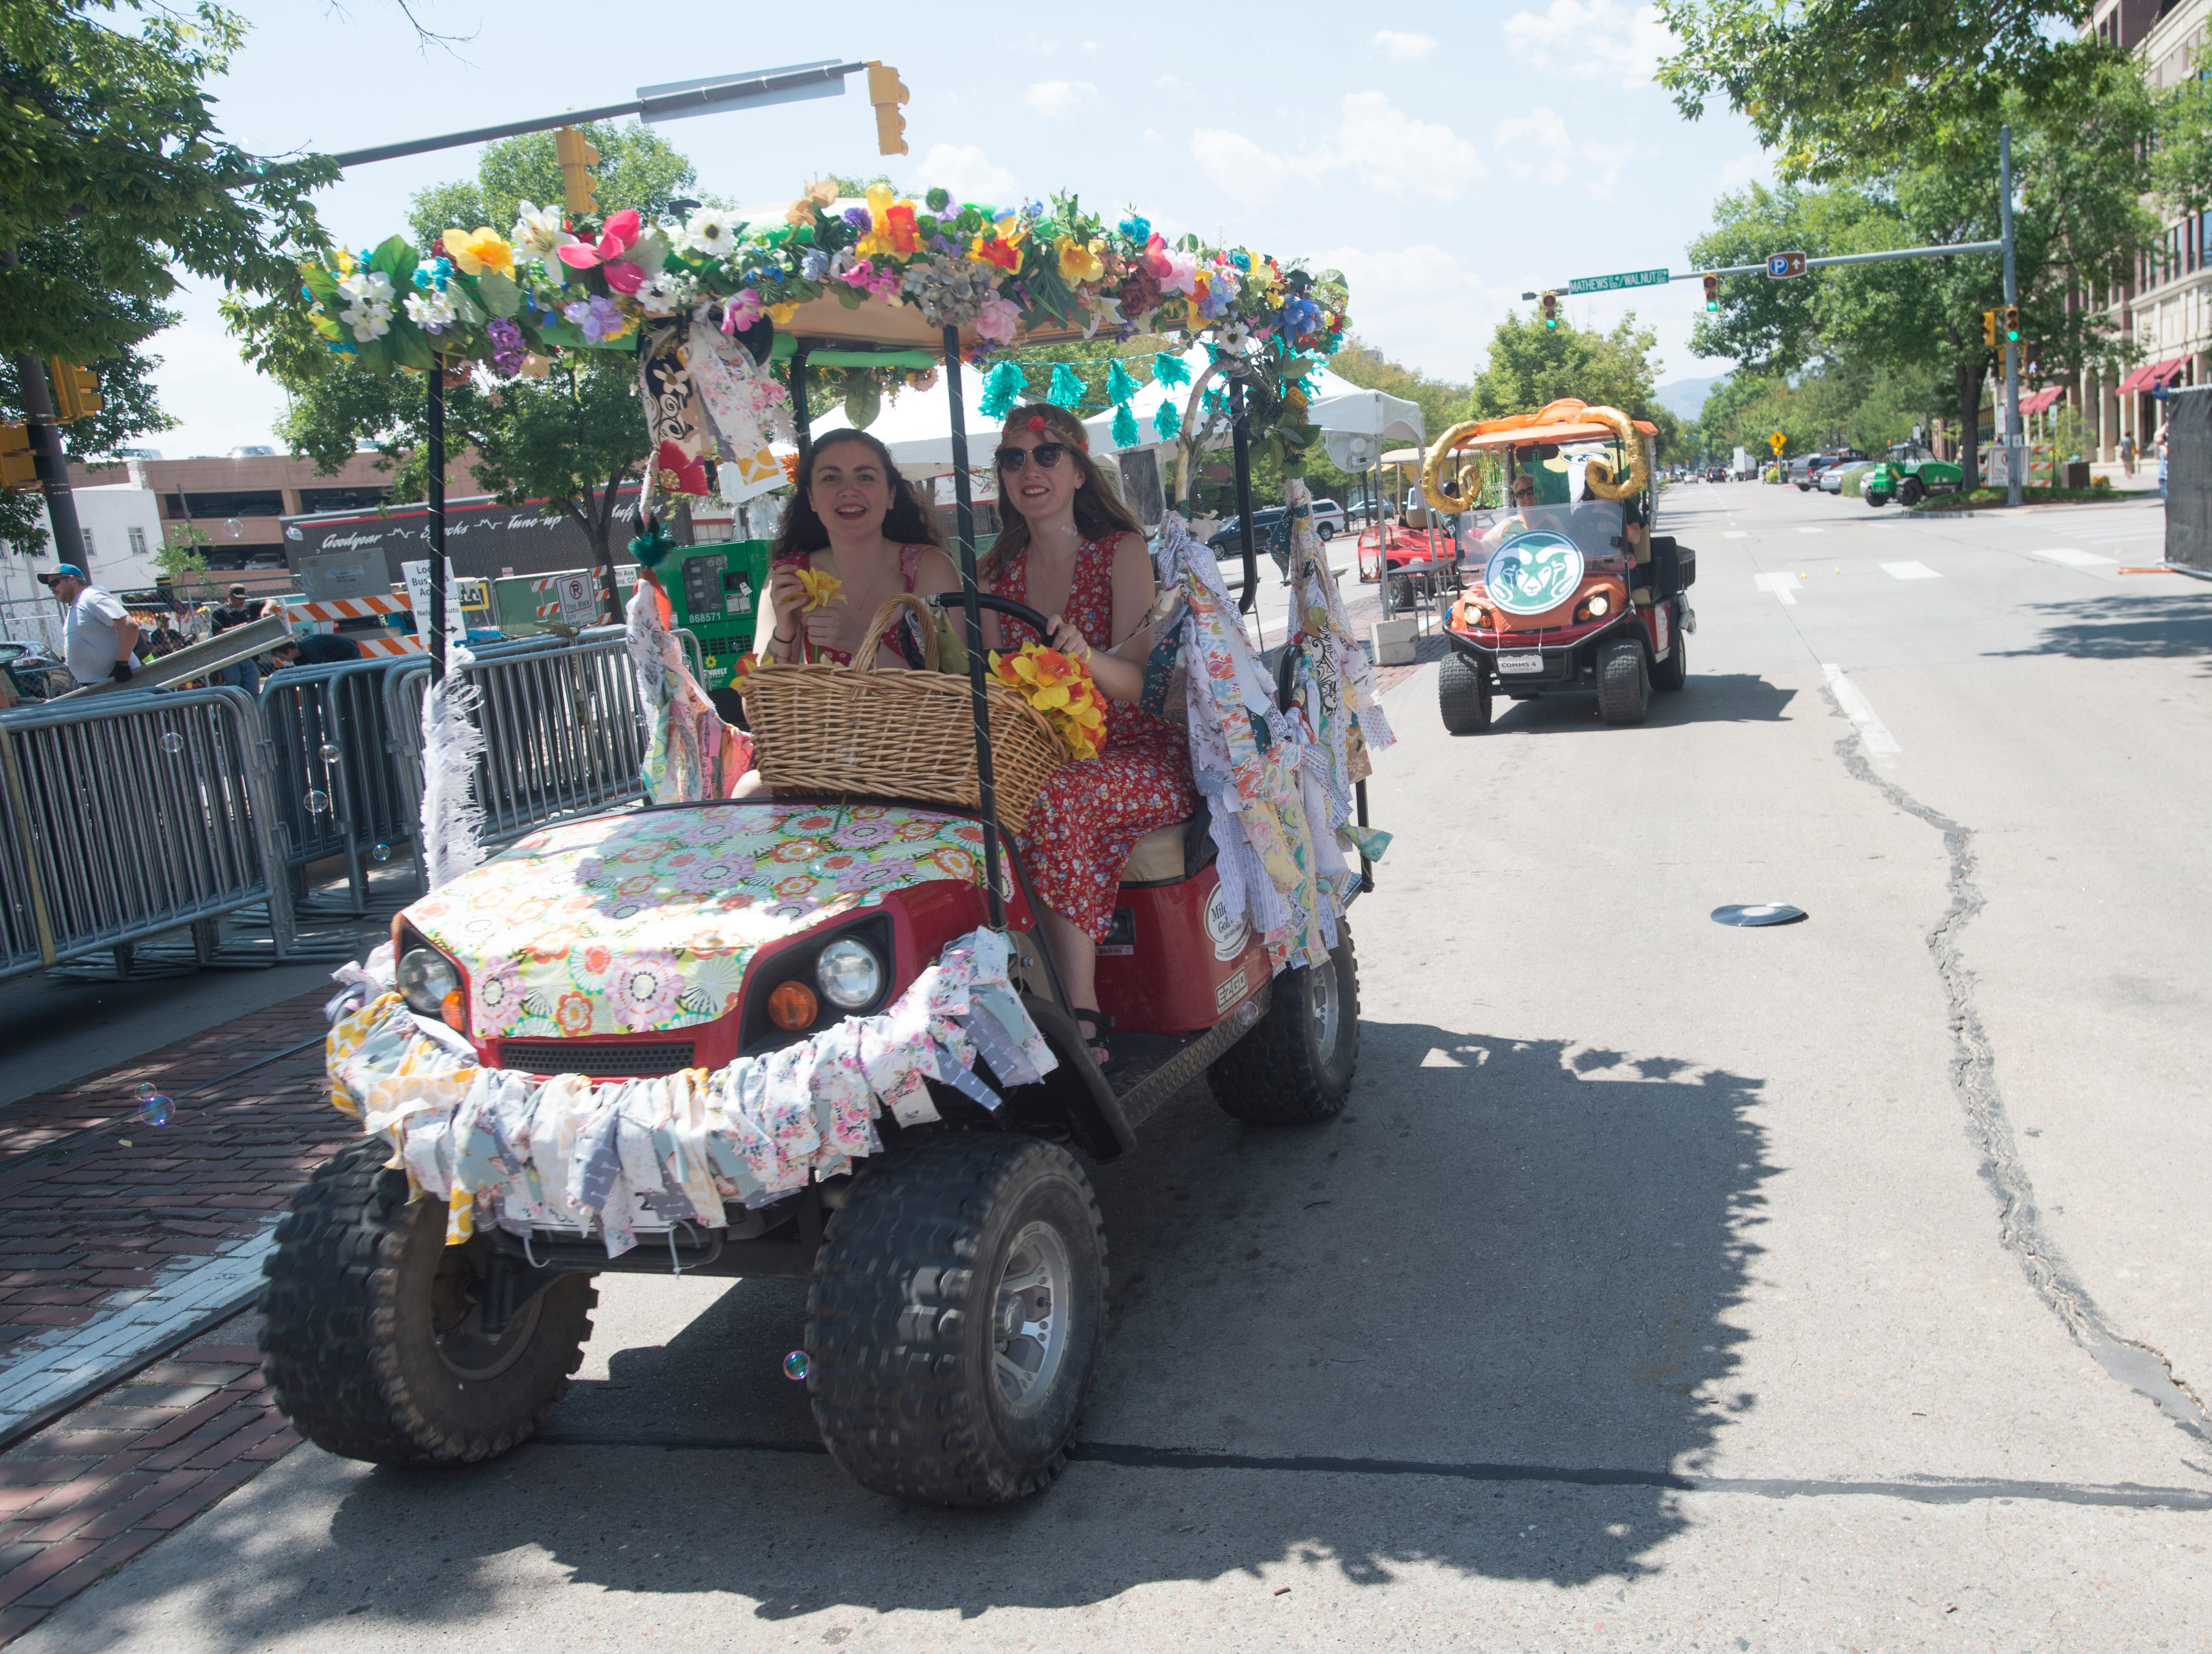 Golf Cart 2: Vote for your favorite NewWestFest decorated golf cart.